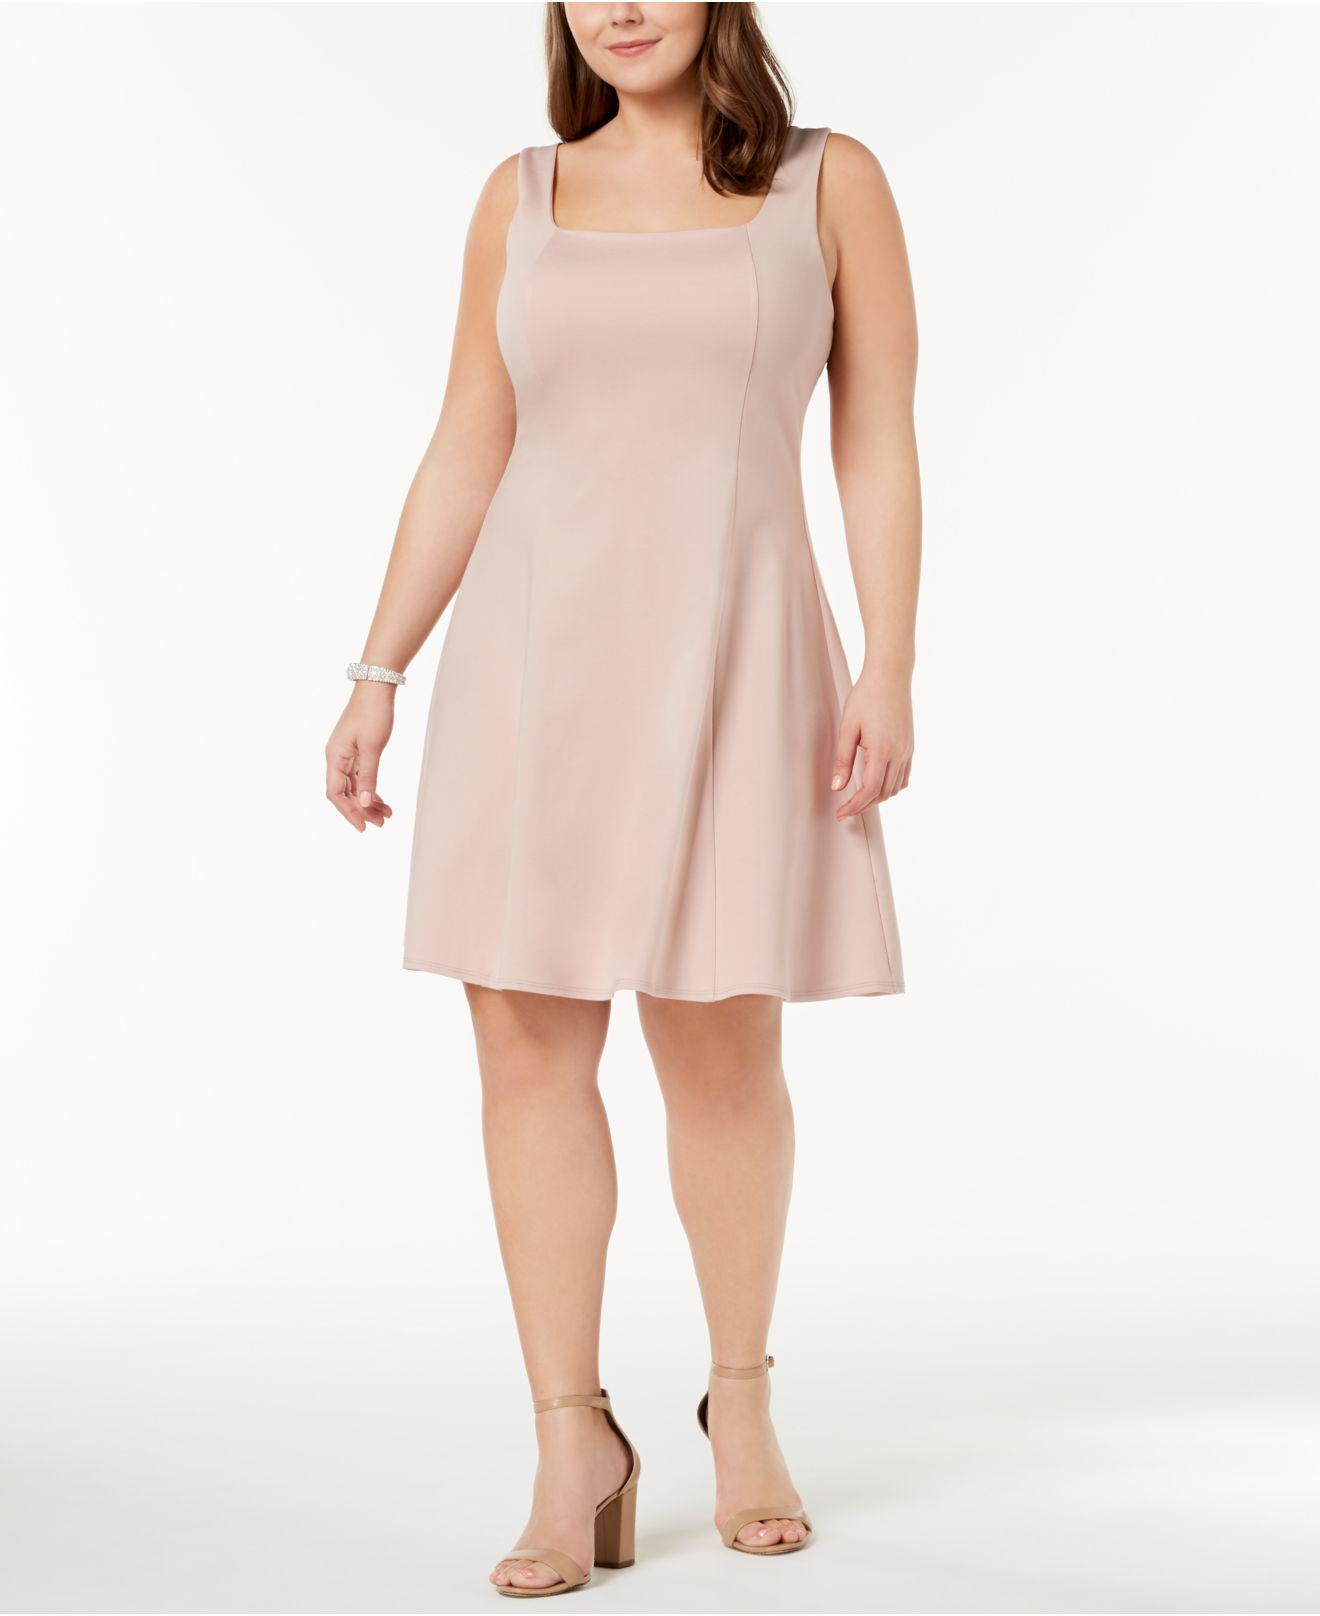 7320b7b68a8 Lyst - Soprano Trendy Plus Size Square-neck Fit   Flare Dress in Pink